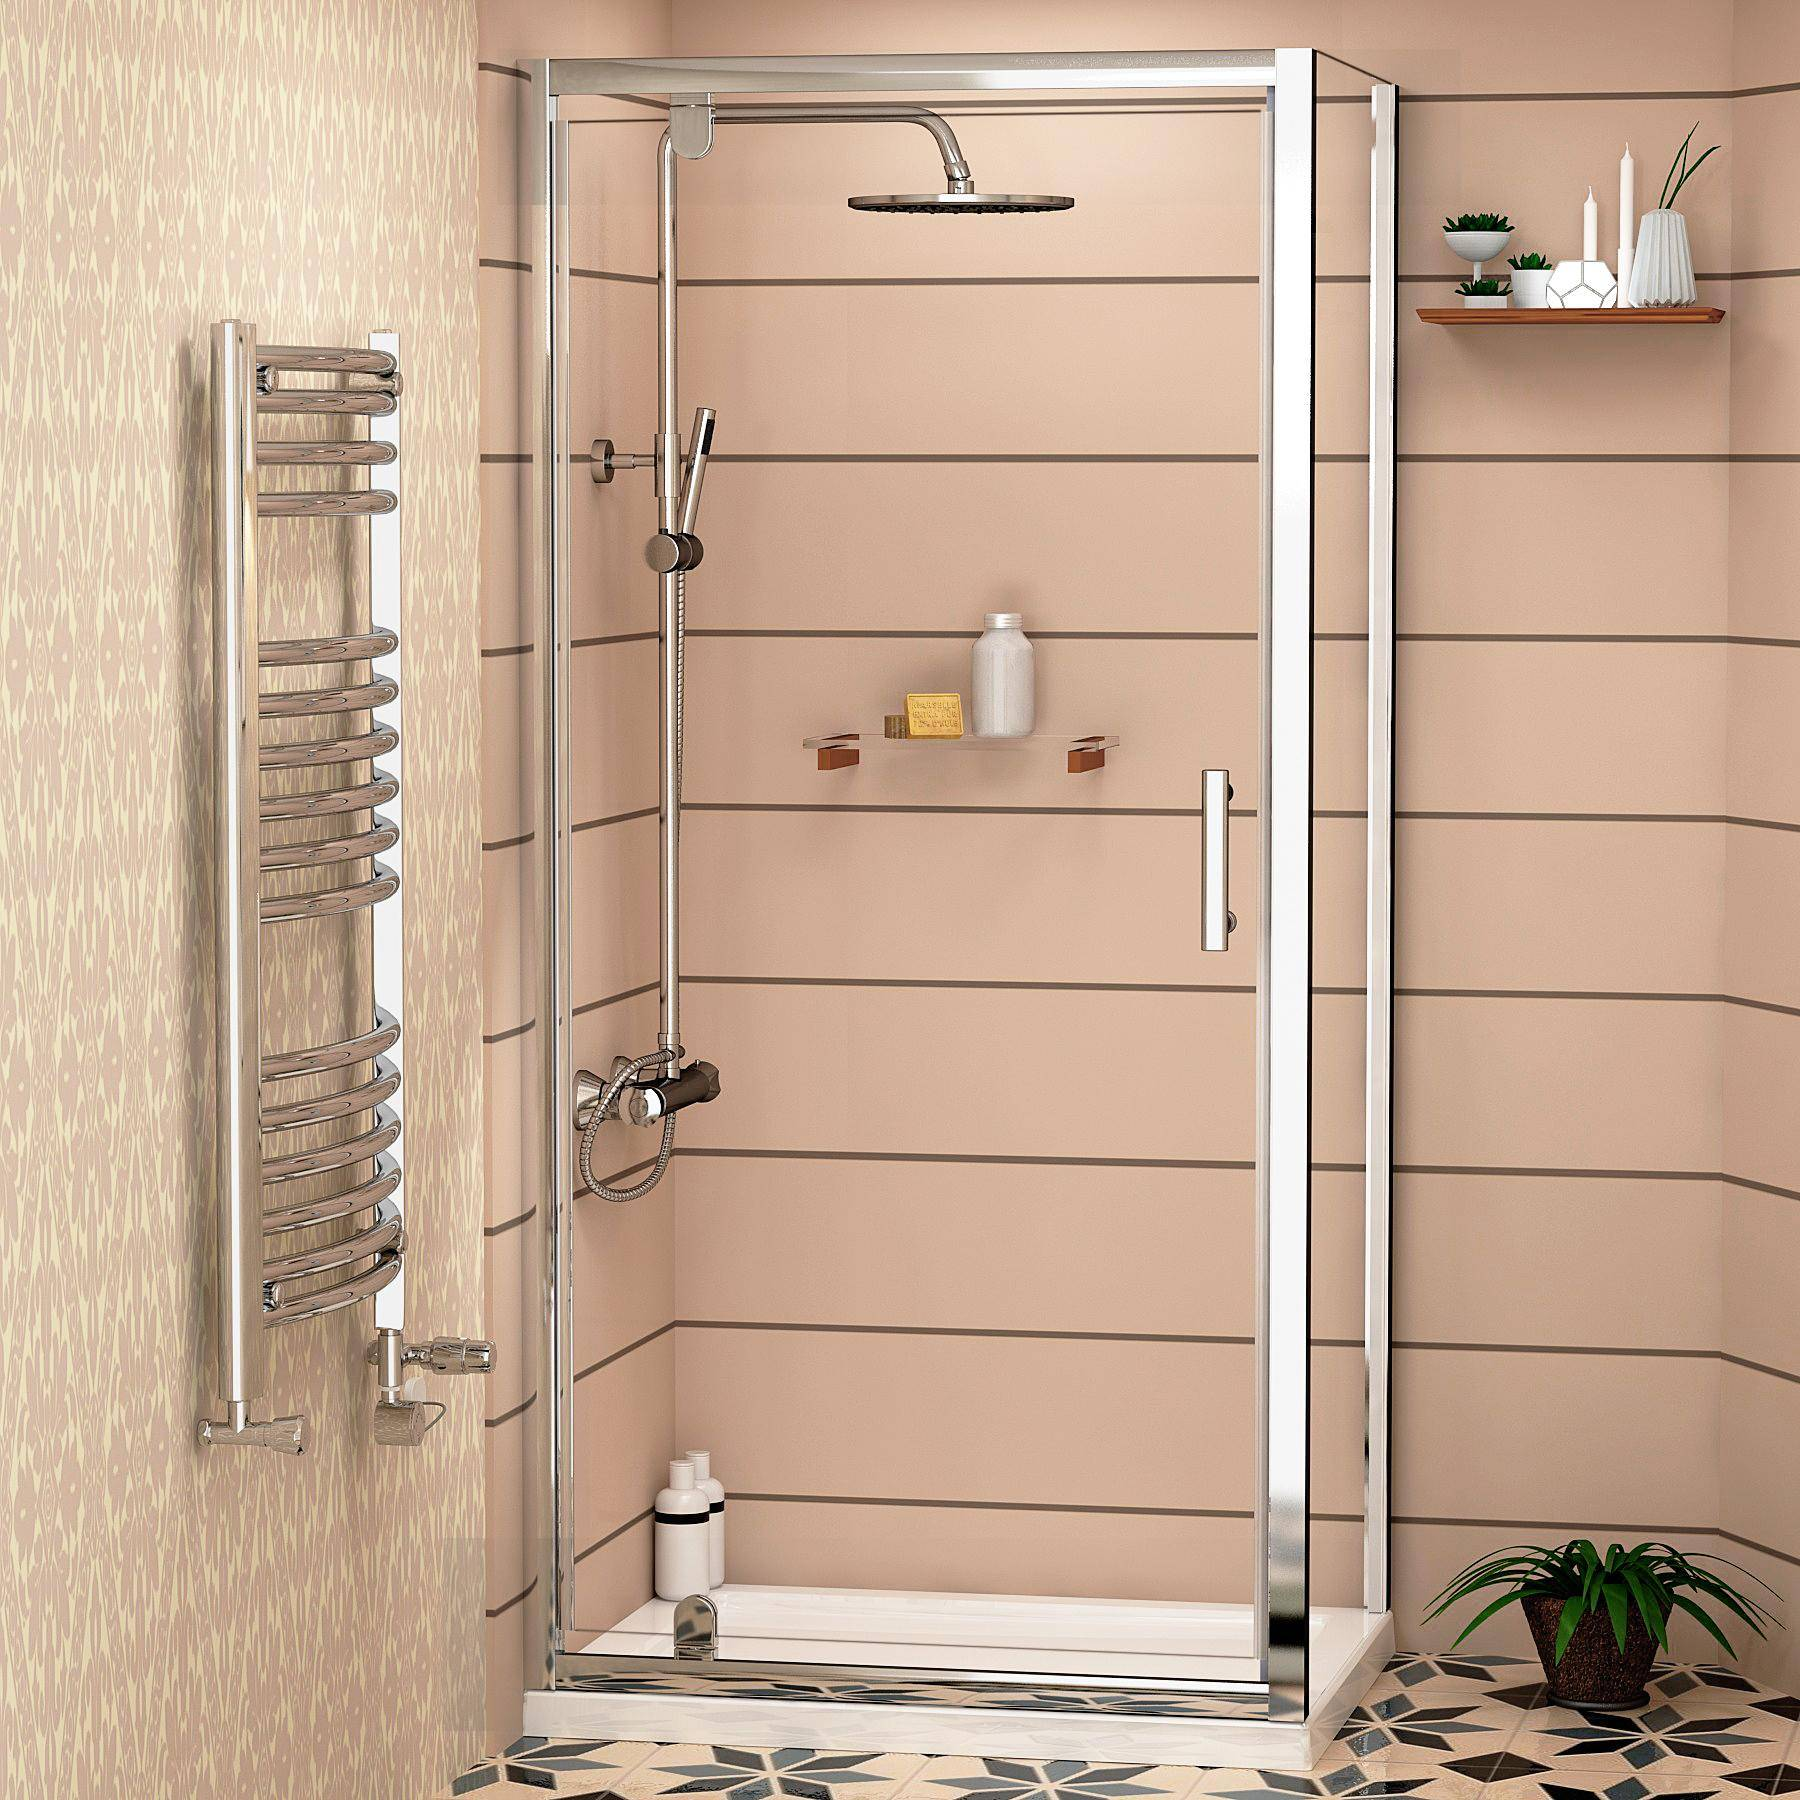 Royal Bathrooms Cube 6mm Square Pivot Door Shower Enclosure with Shower Tray 800 x 800mm